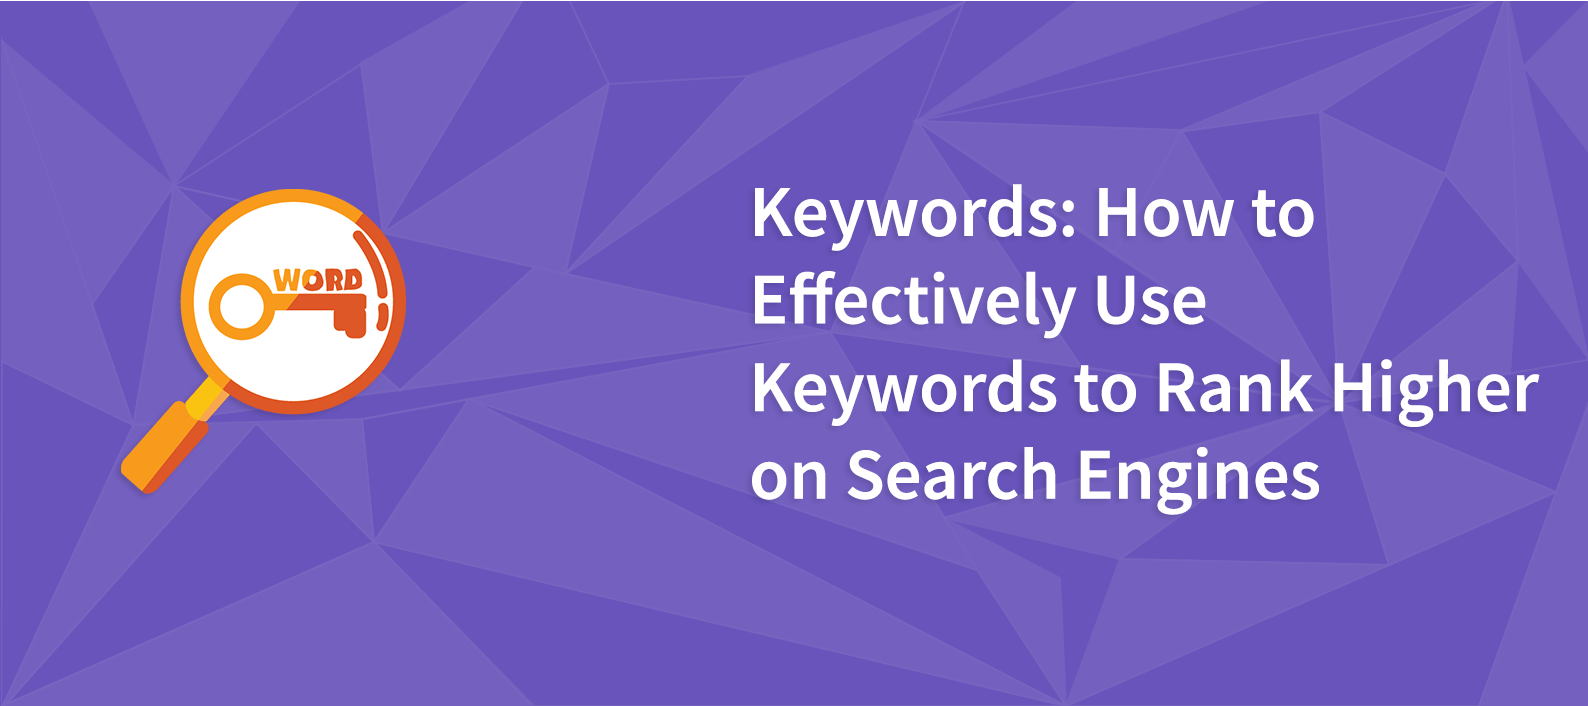 How to Effectively Use Keywords to Rank Higher on Search Engines